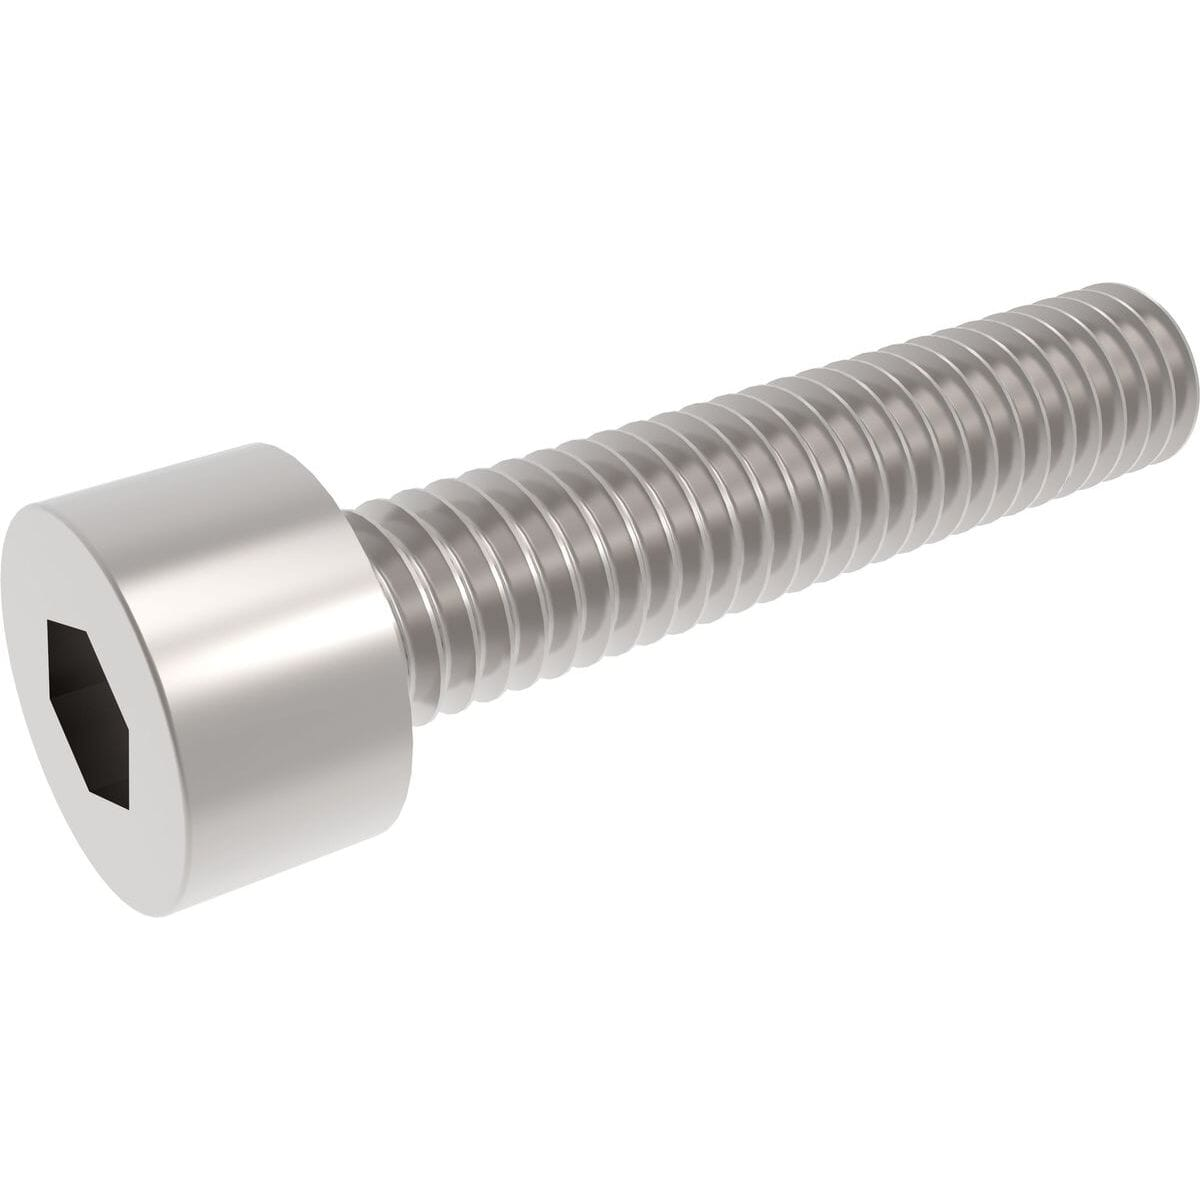 M8 x 100mm Full Thread Cap Head Screws (DIN 912) - Marine Stainless Steel (A4)